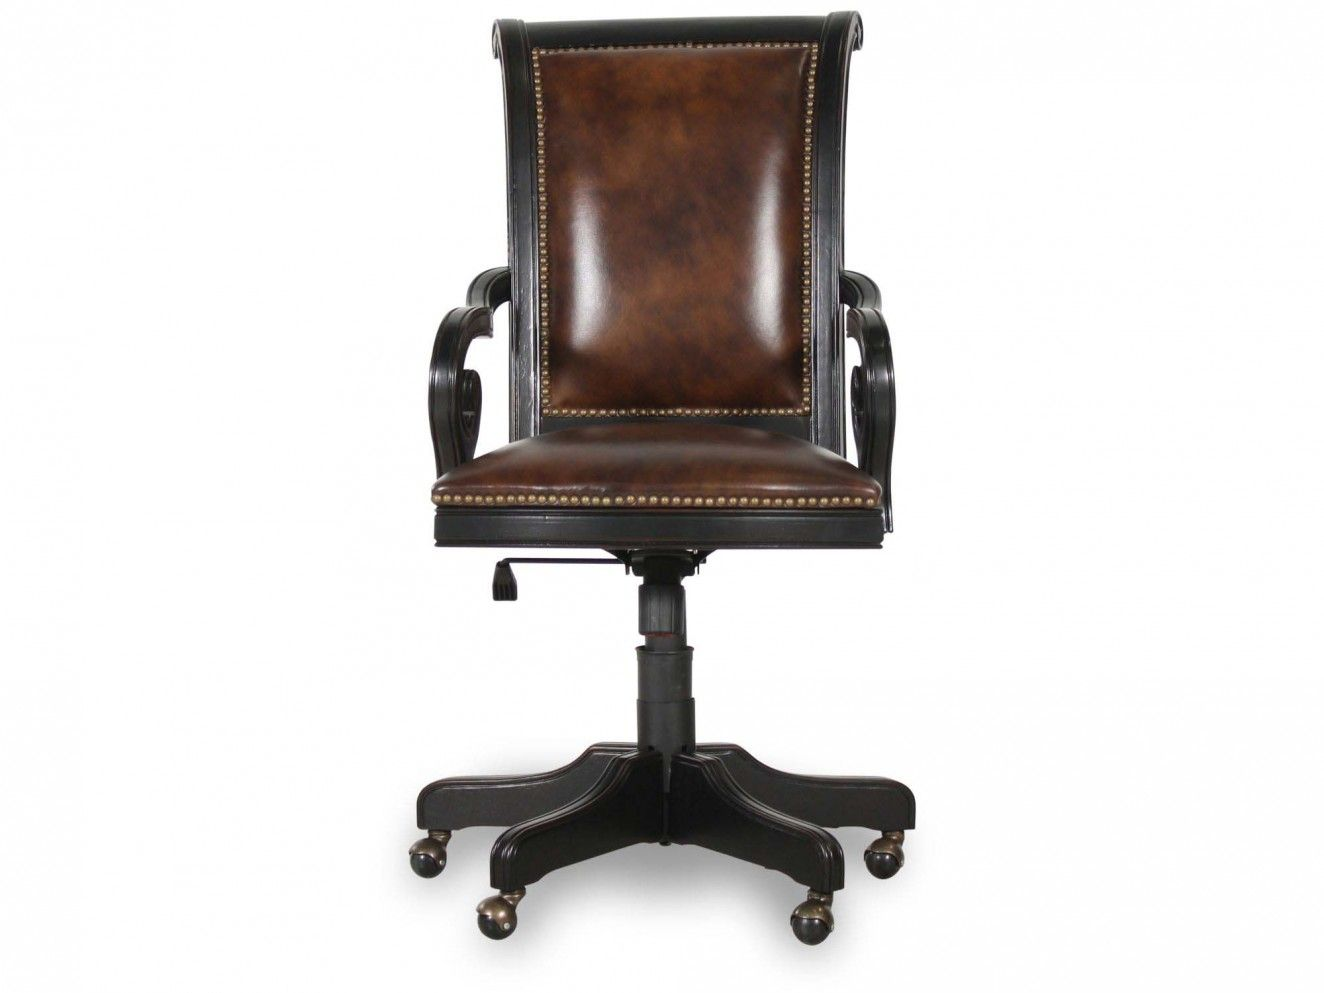 Wood Desk Chair With Wheels What Is The Best Interior Paint Check More At Http Www Gameintown Com Wood Desk Wooden Desk Chairs Swivel Chair Desk Desk Chair